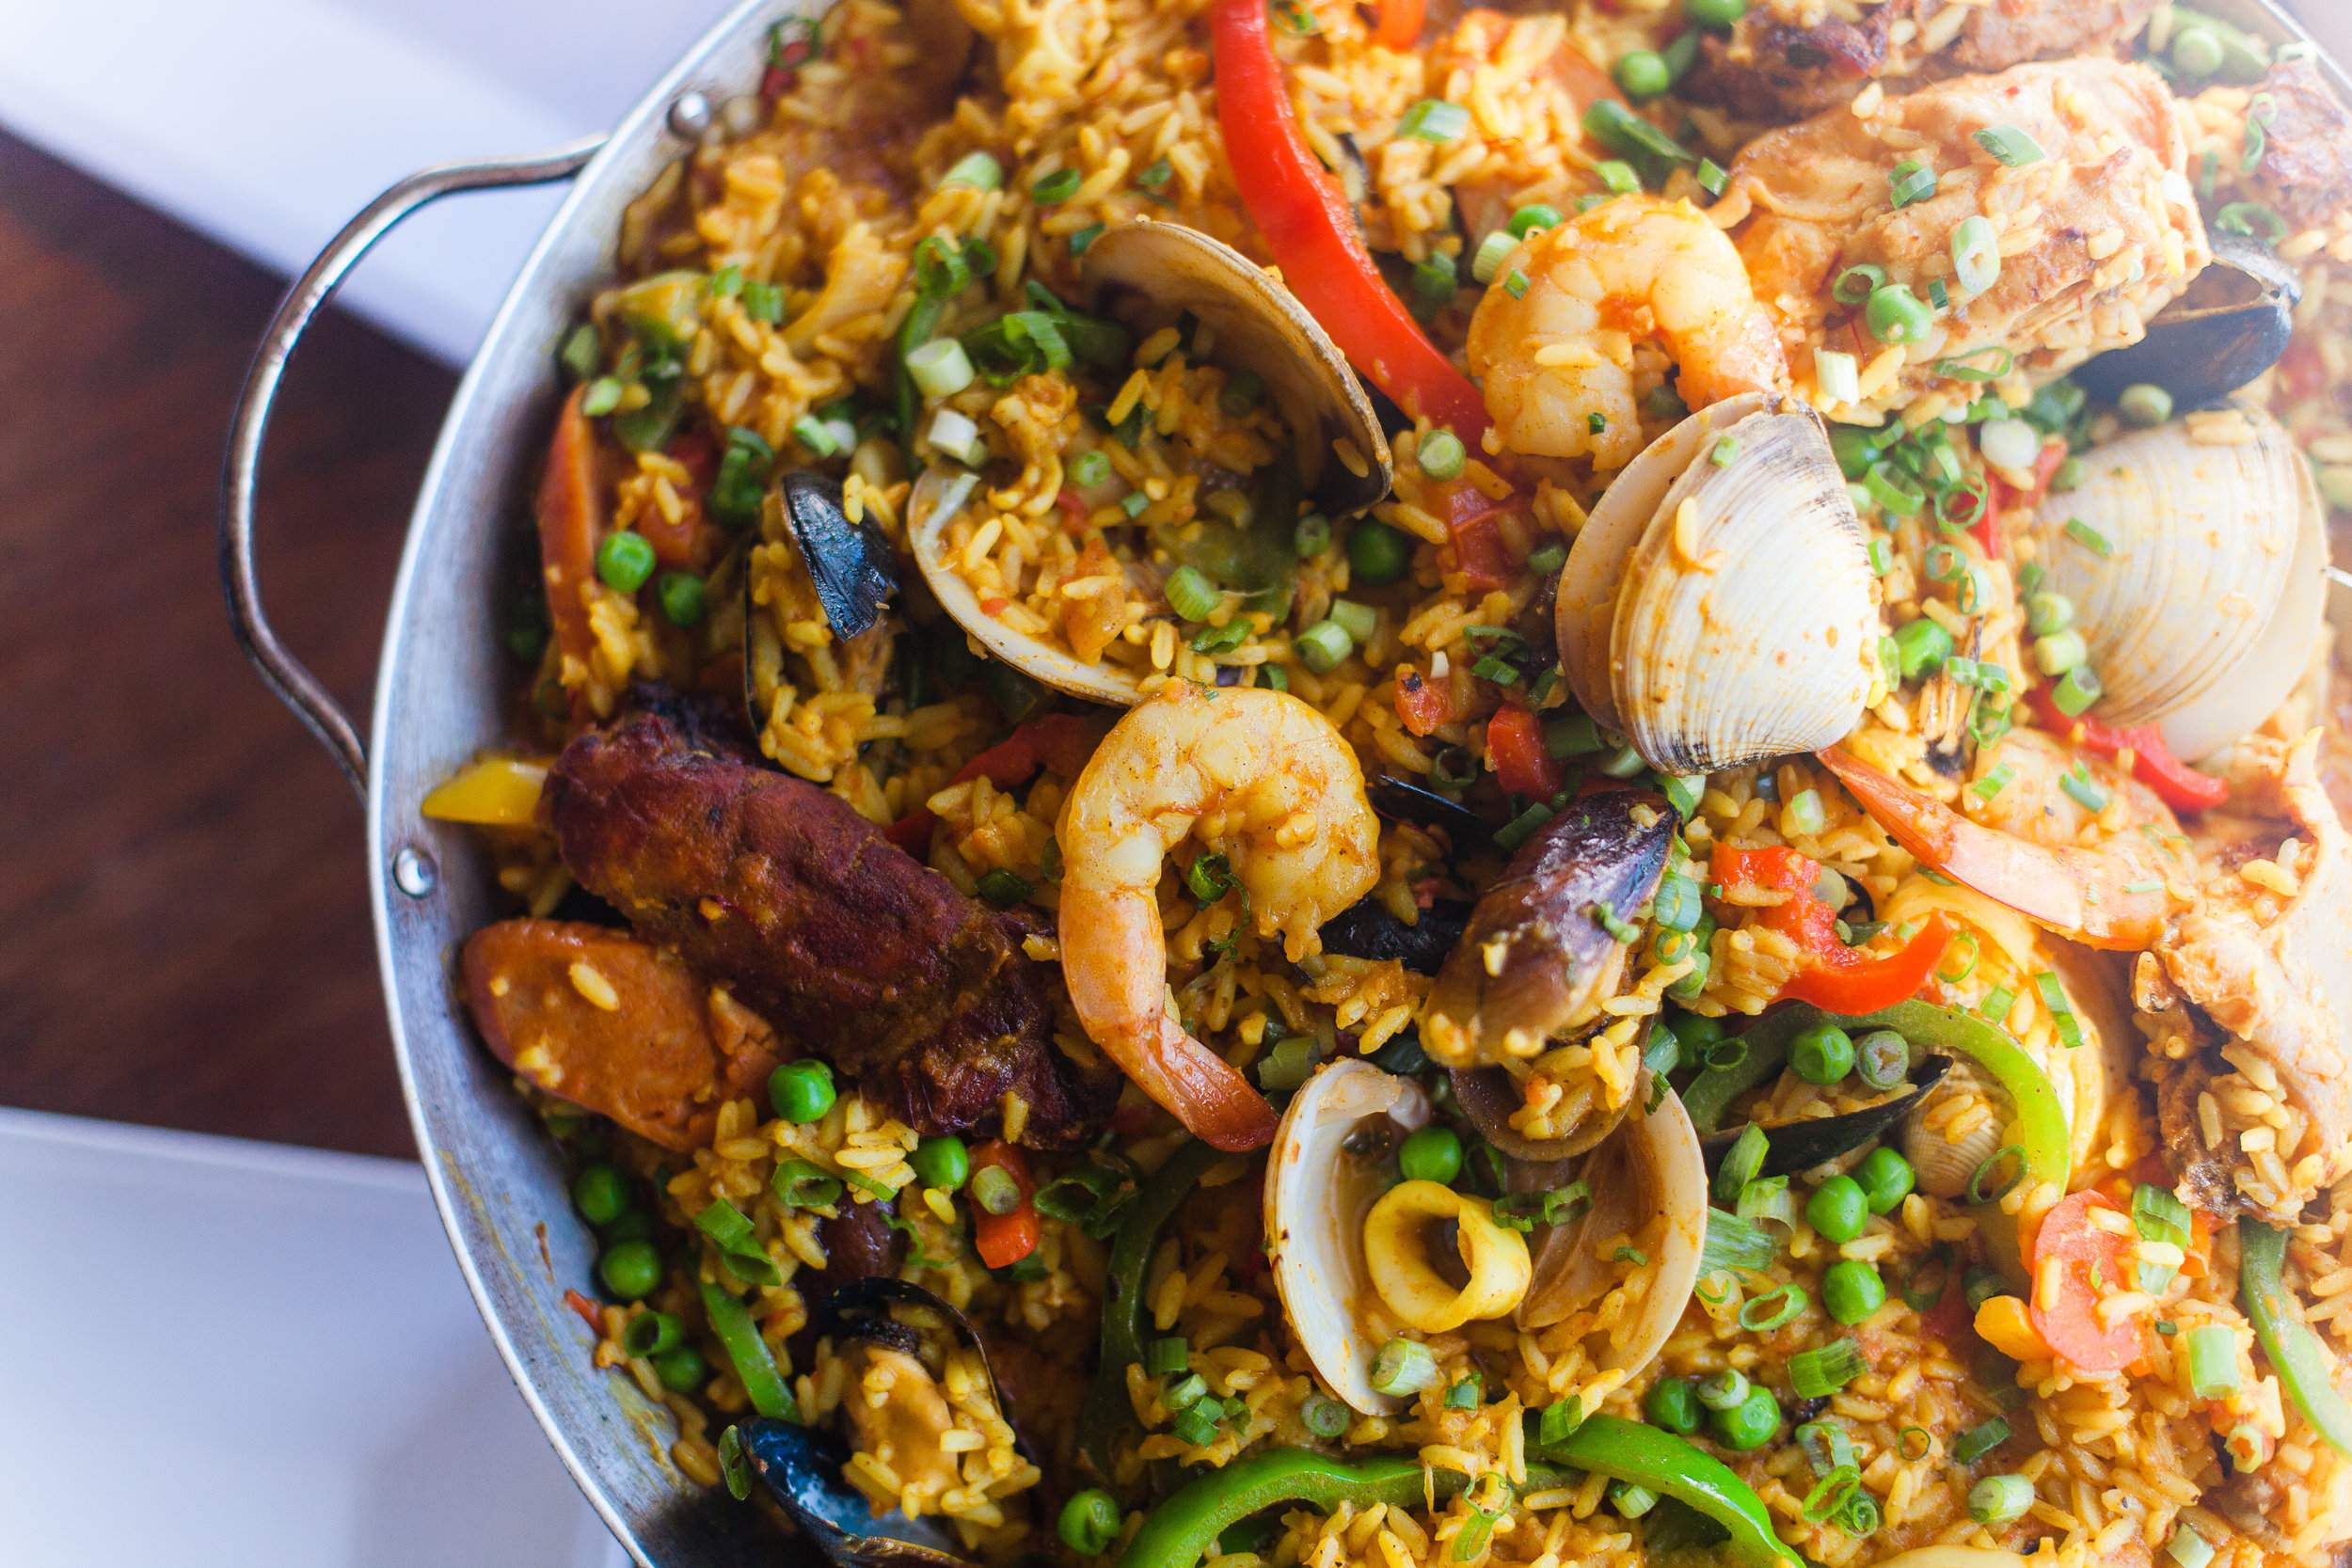 Paradise Cove's paella was inspired by a Morris family vacation to Spain.